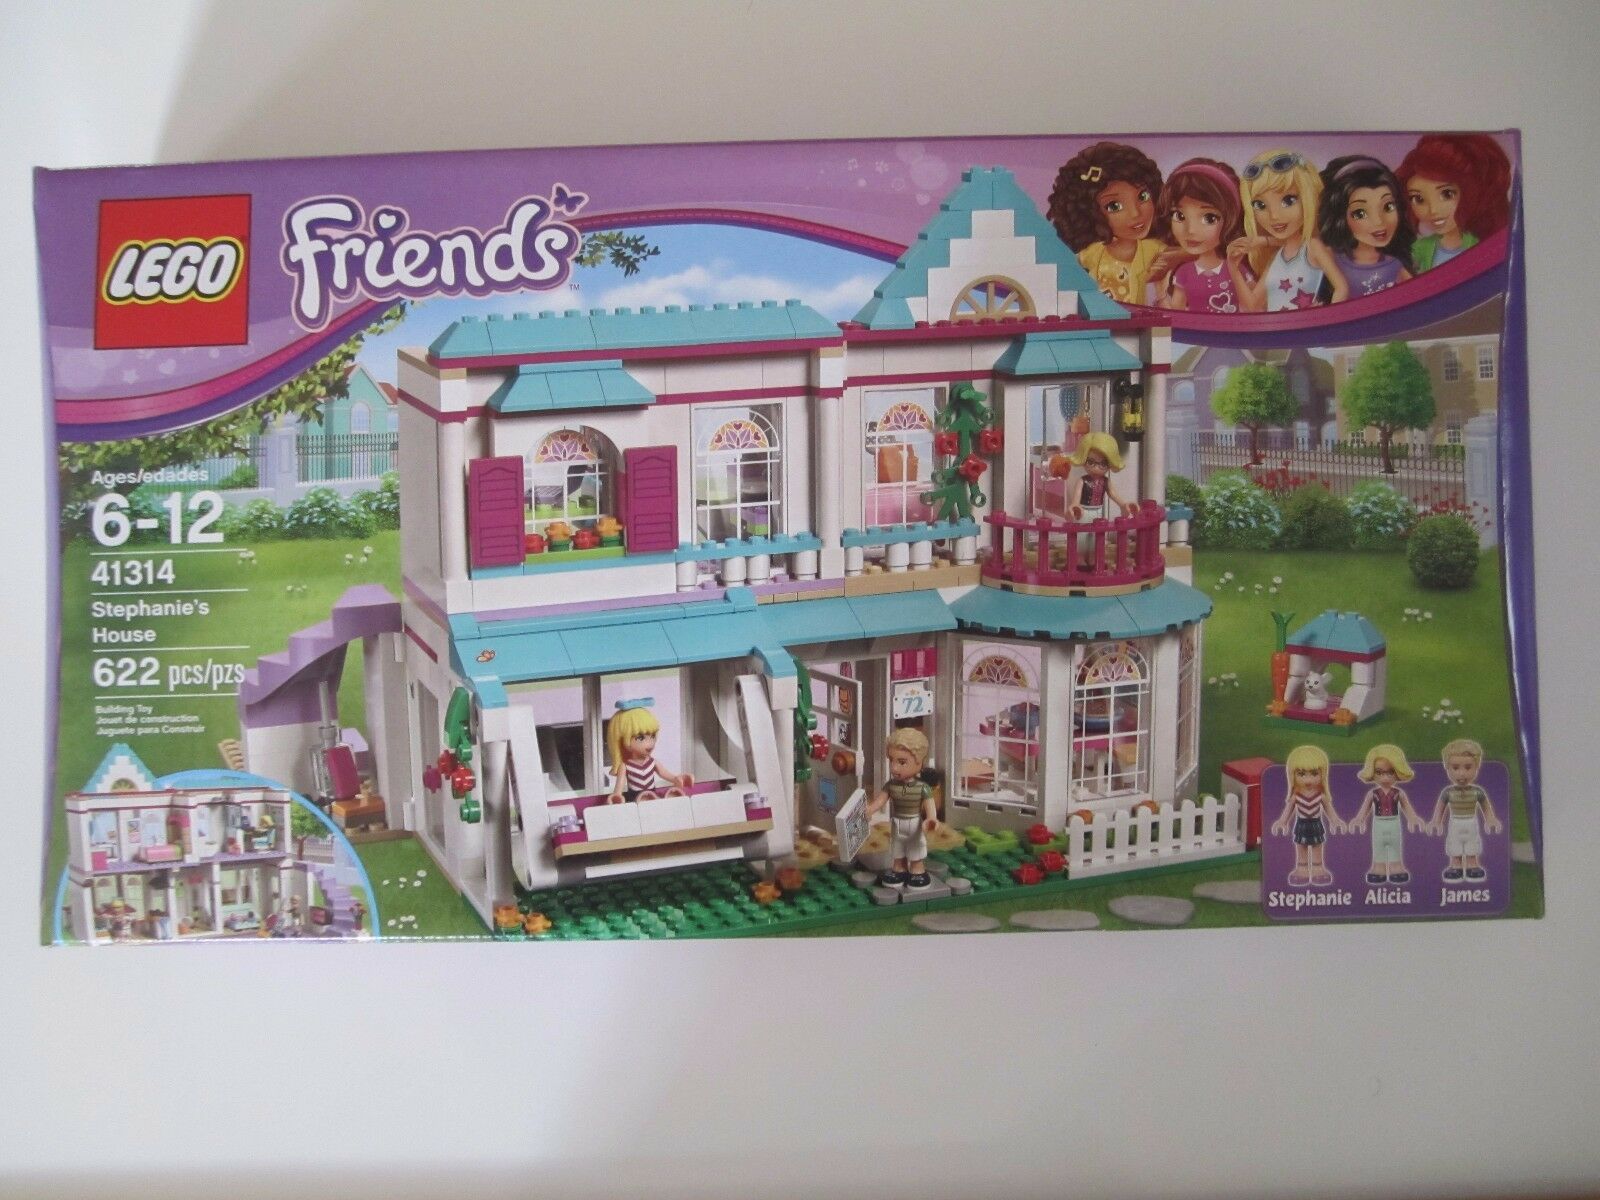 41314 LEGO Friends Stephanie's House Heartlake 622 Pieces  Sealed Nuovo In Box